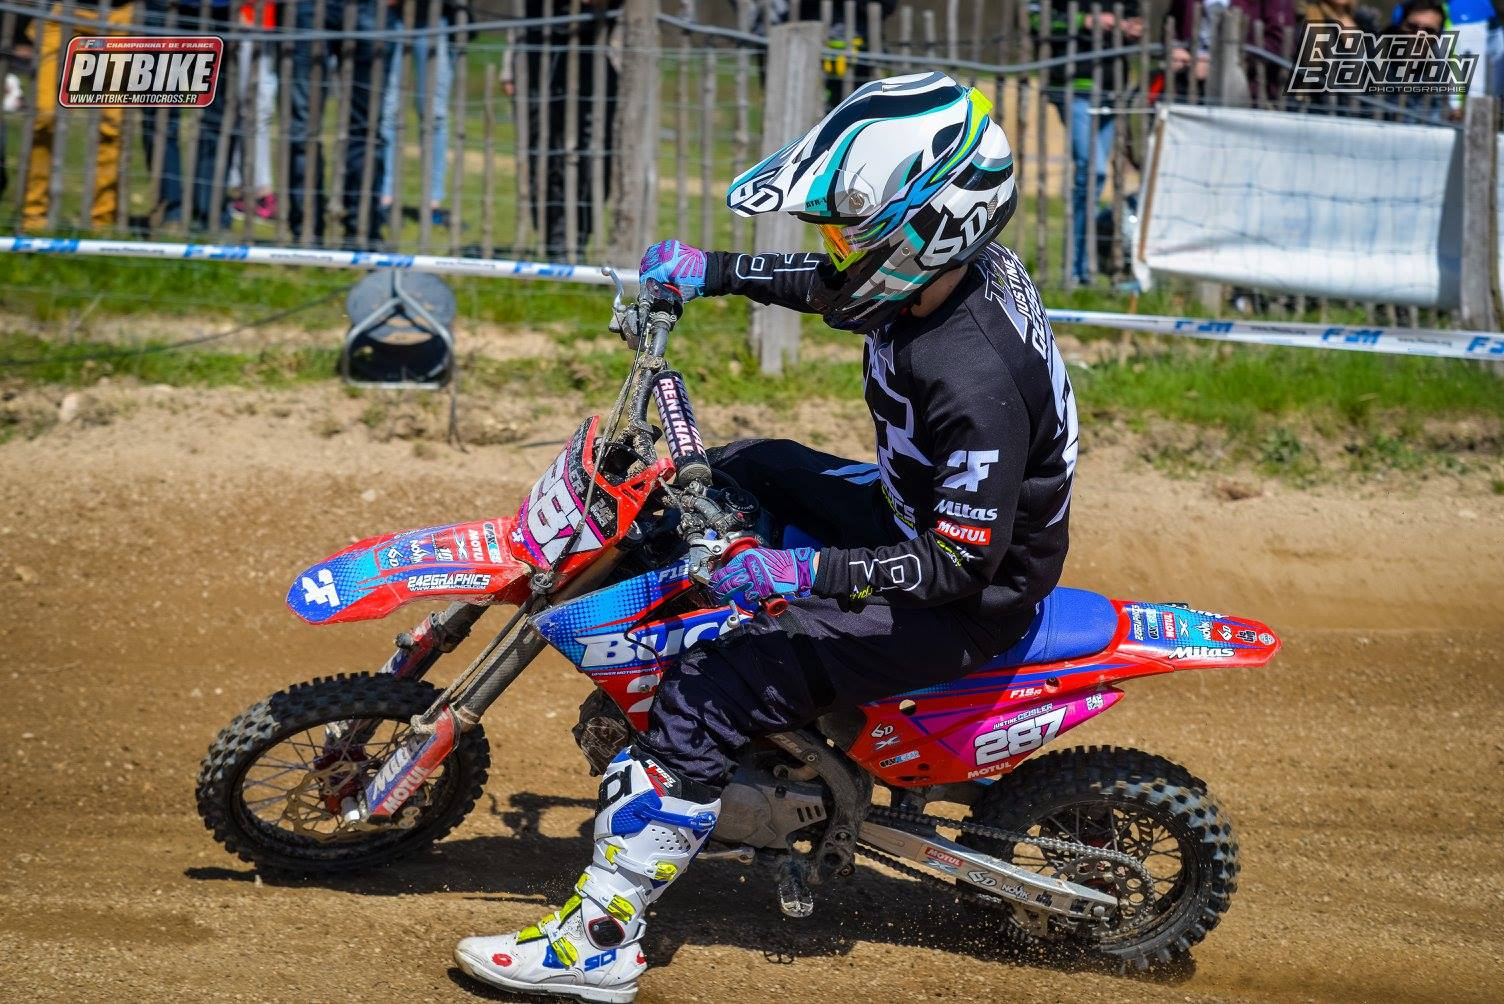 Championnat de France de Pitbike - WKX Racing et Mini4temps.fr